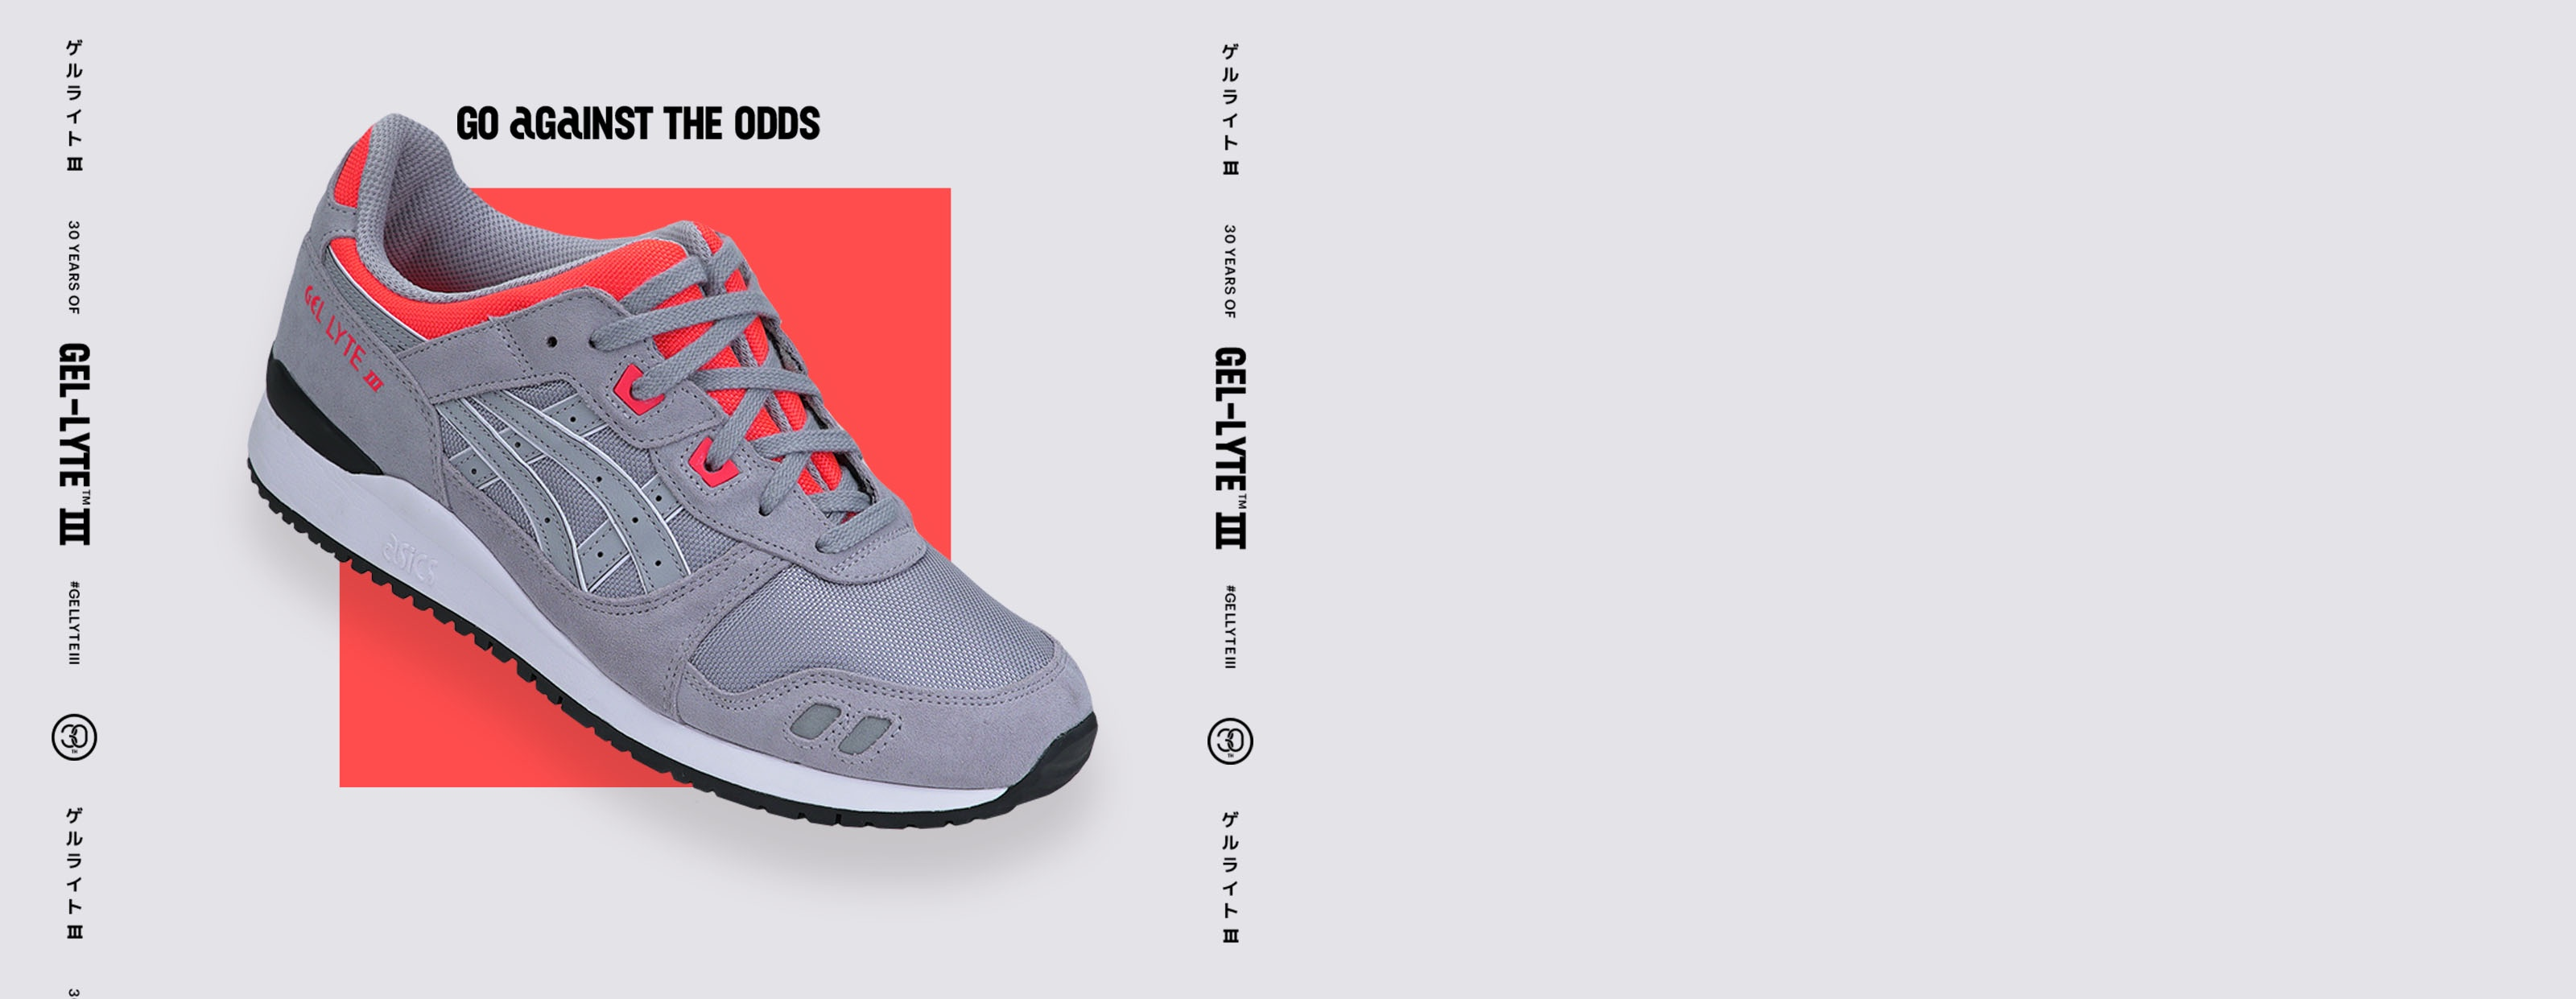 Grey Gel-Lyte III shoe on grey background.